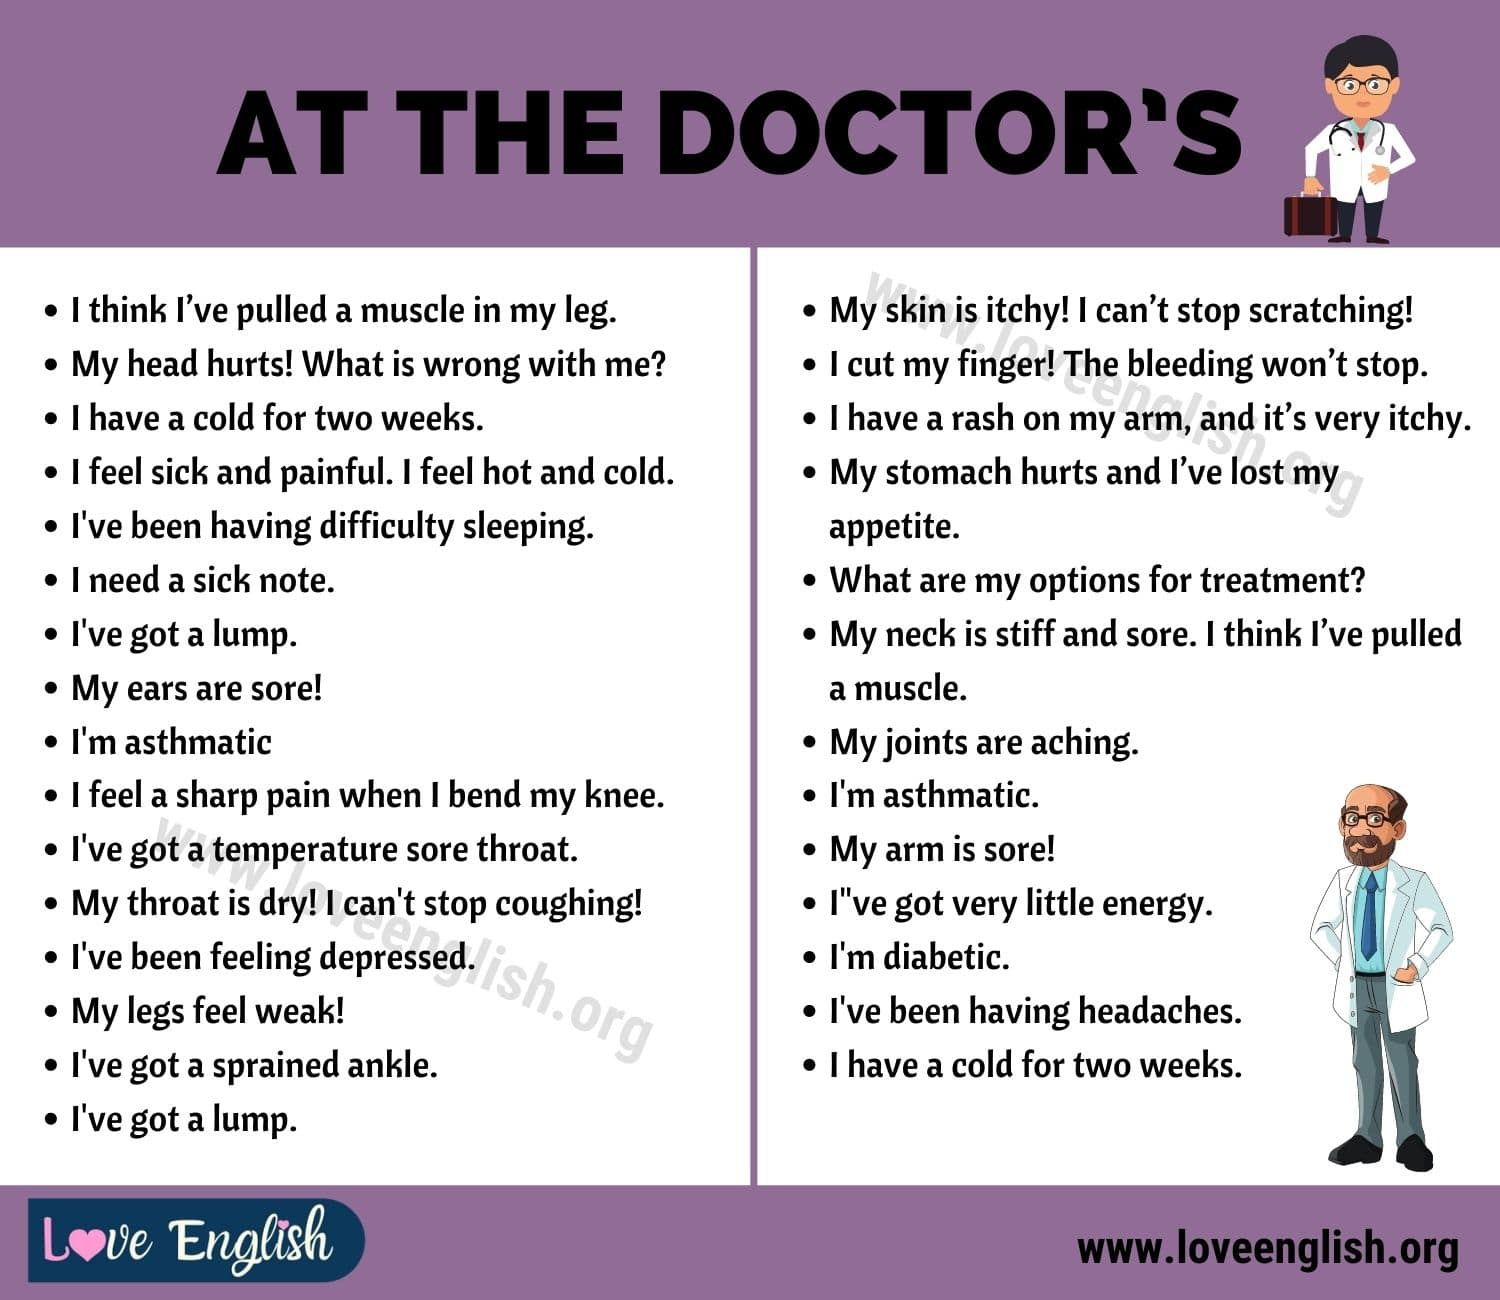 At the Doctor's